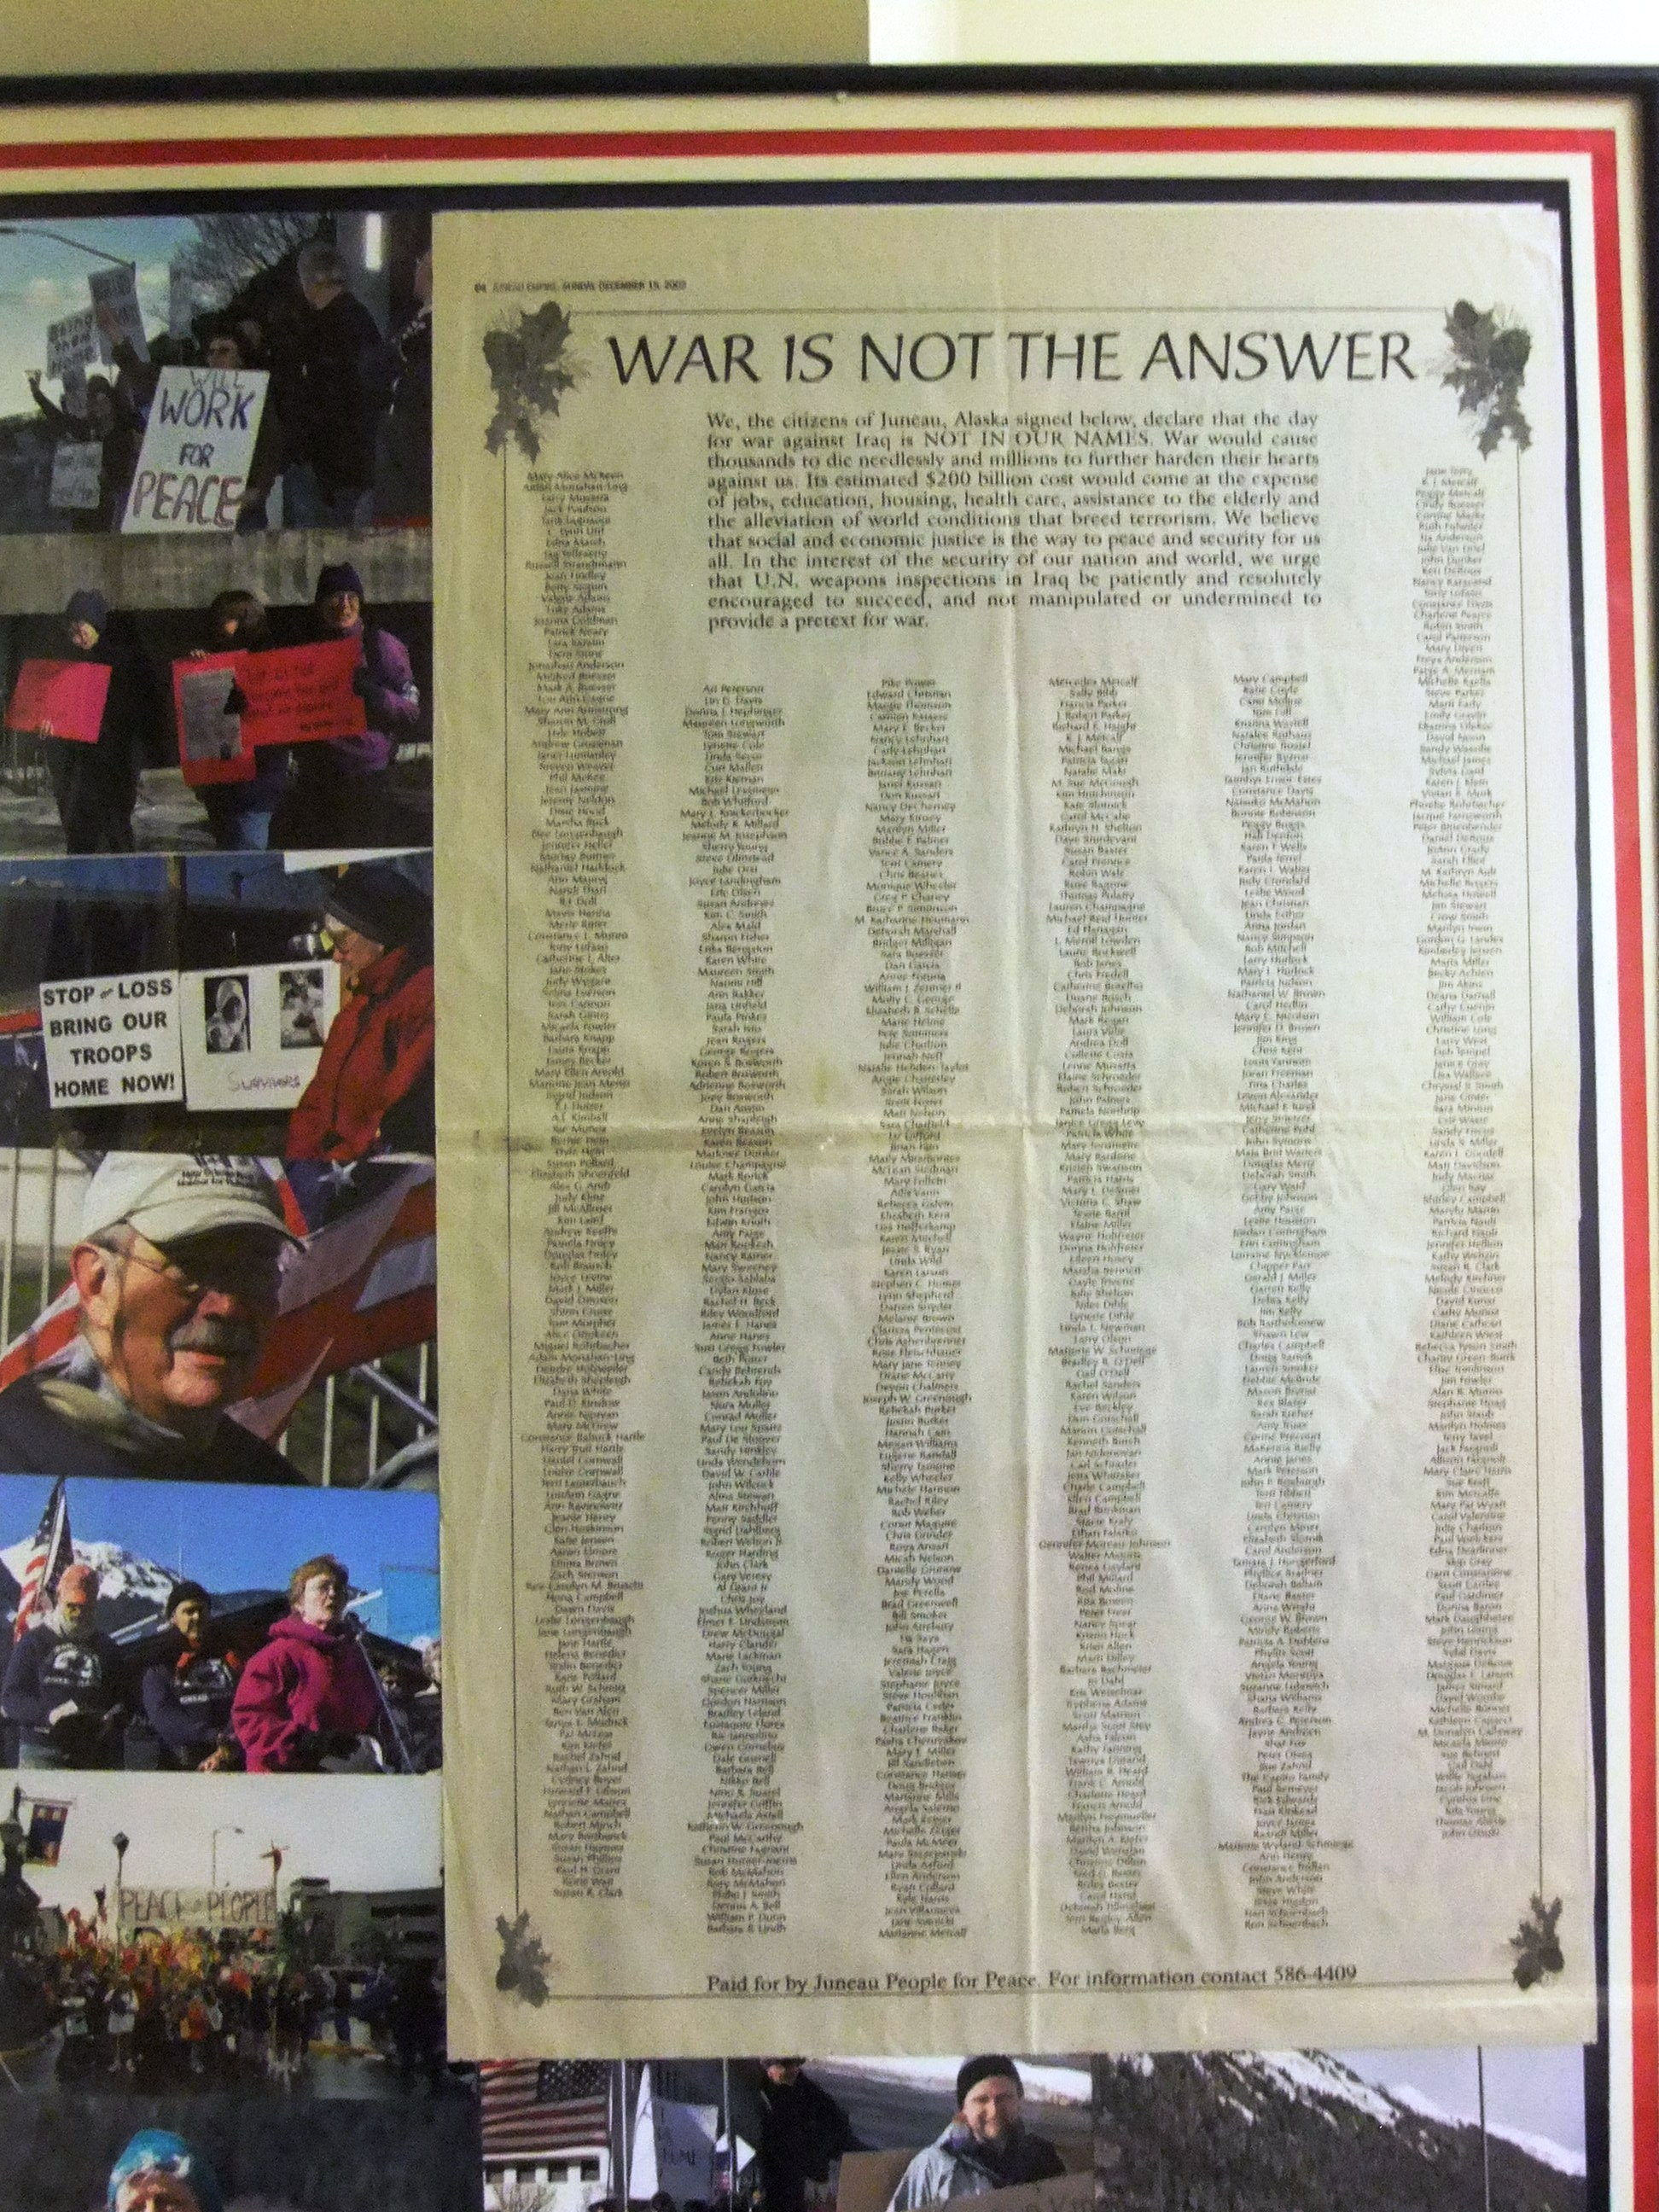 More than 1,000 Juneau residents signed this ad published in December 2002. Local peace groups were active then. Concerns about Syria is prompting new interest..